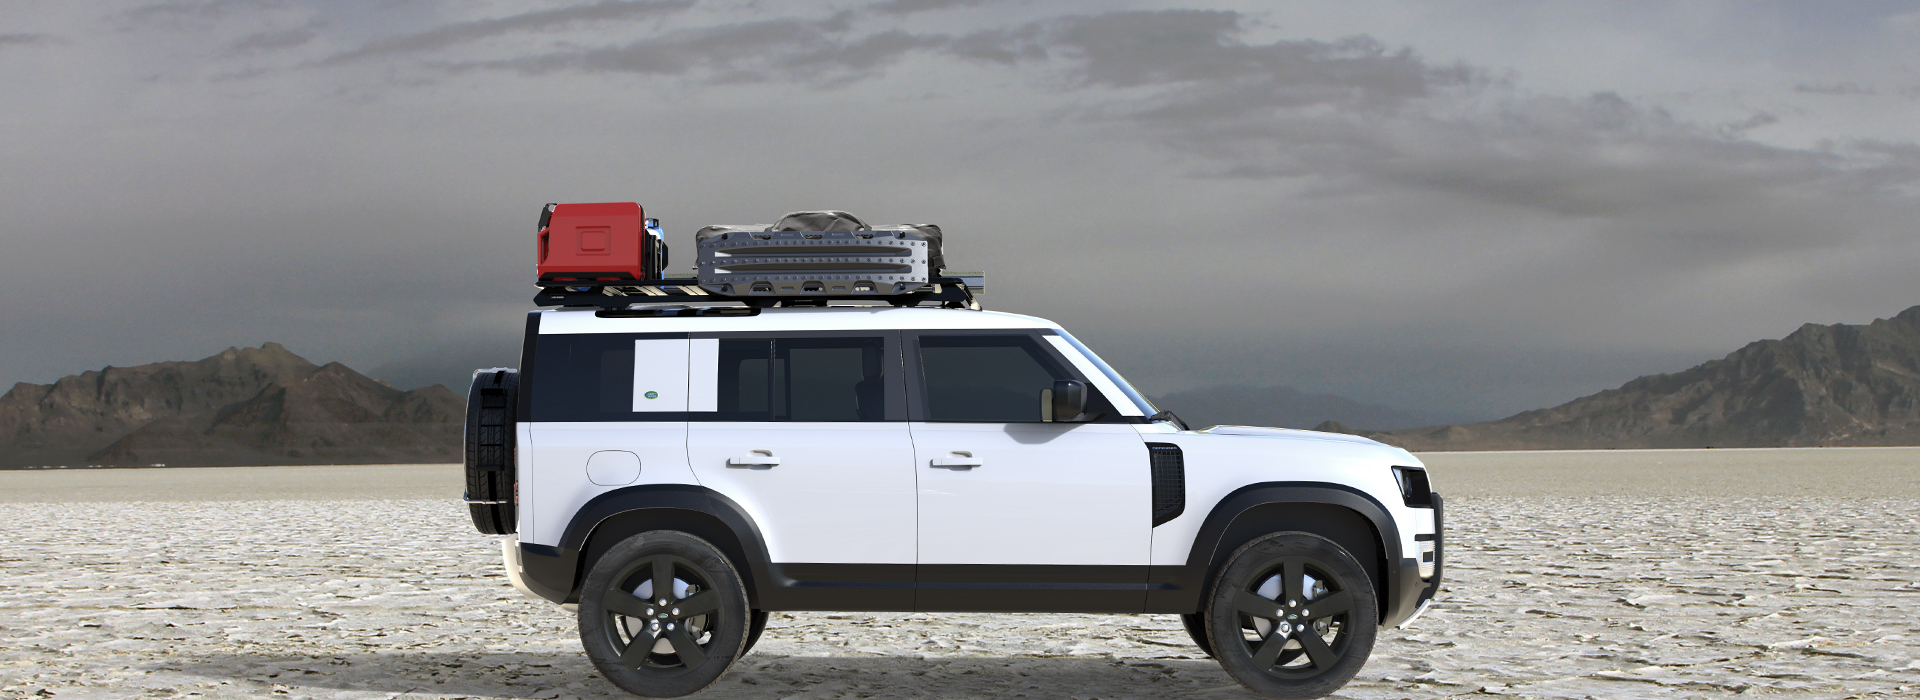 The New Defender Gets A Front Runner Rack - Expedition Portal